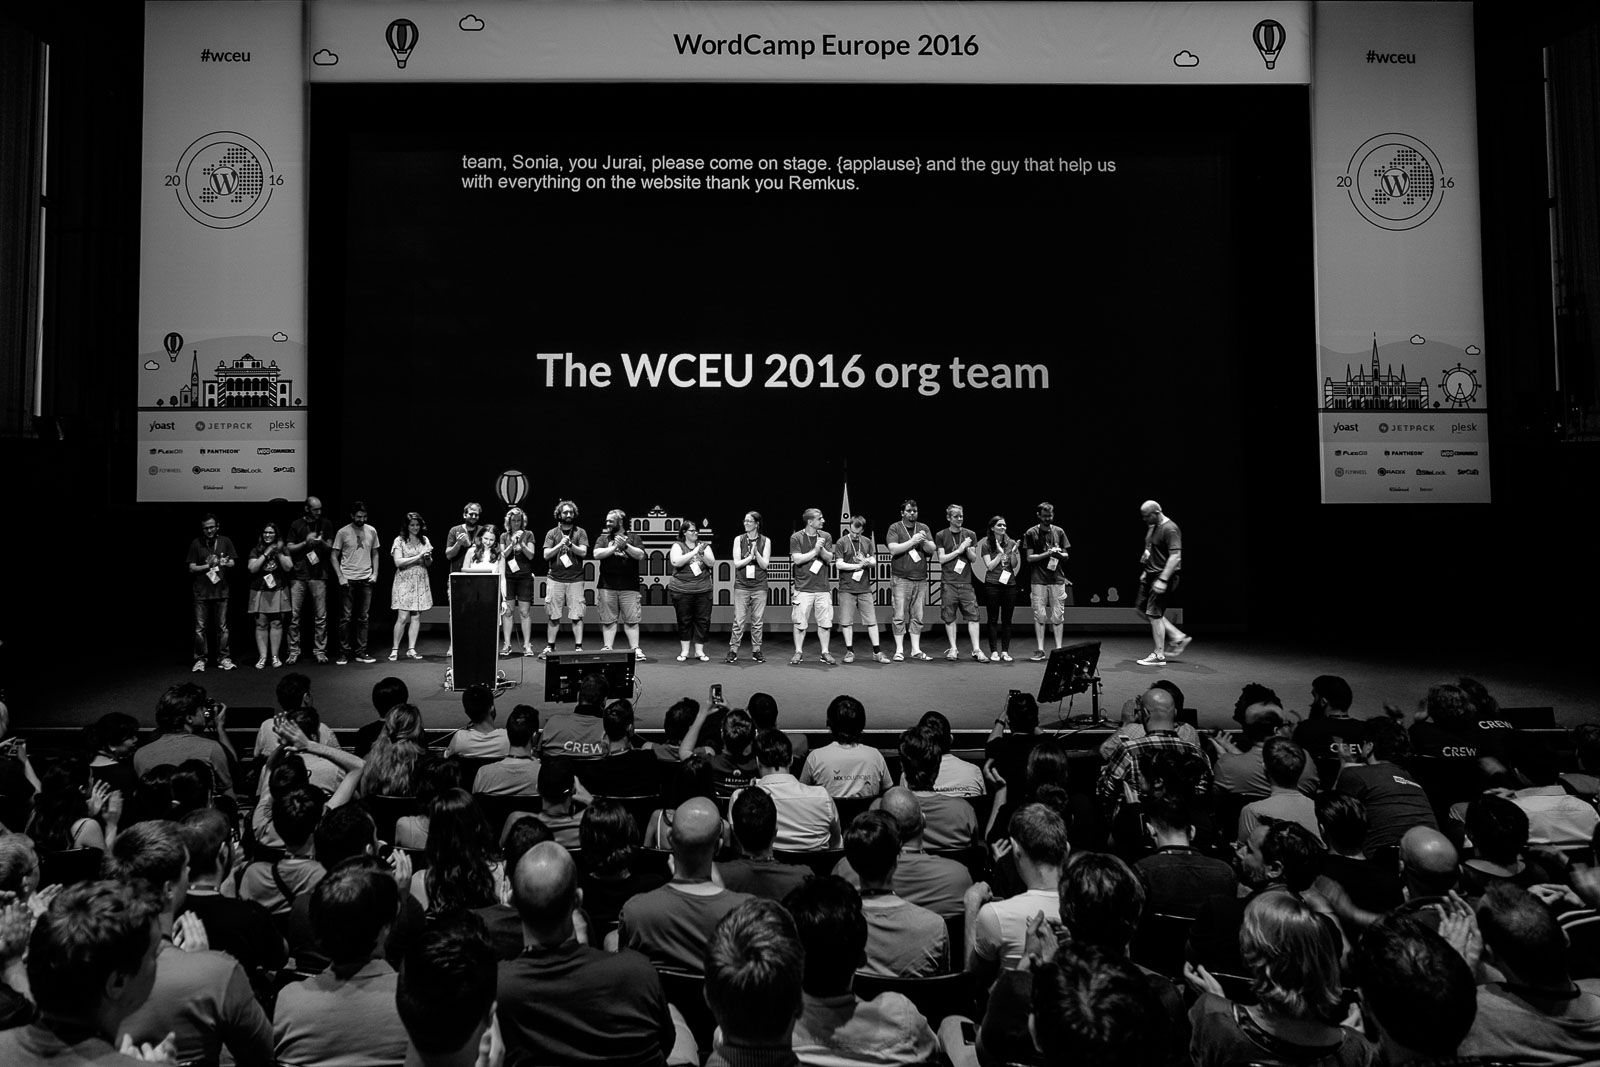 Organizers of WordCamp Europe 2016 in Vienna